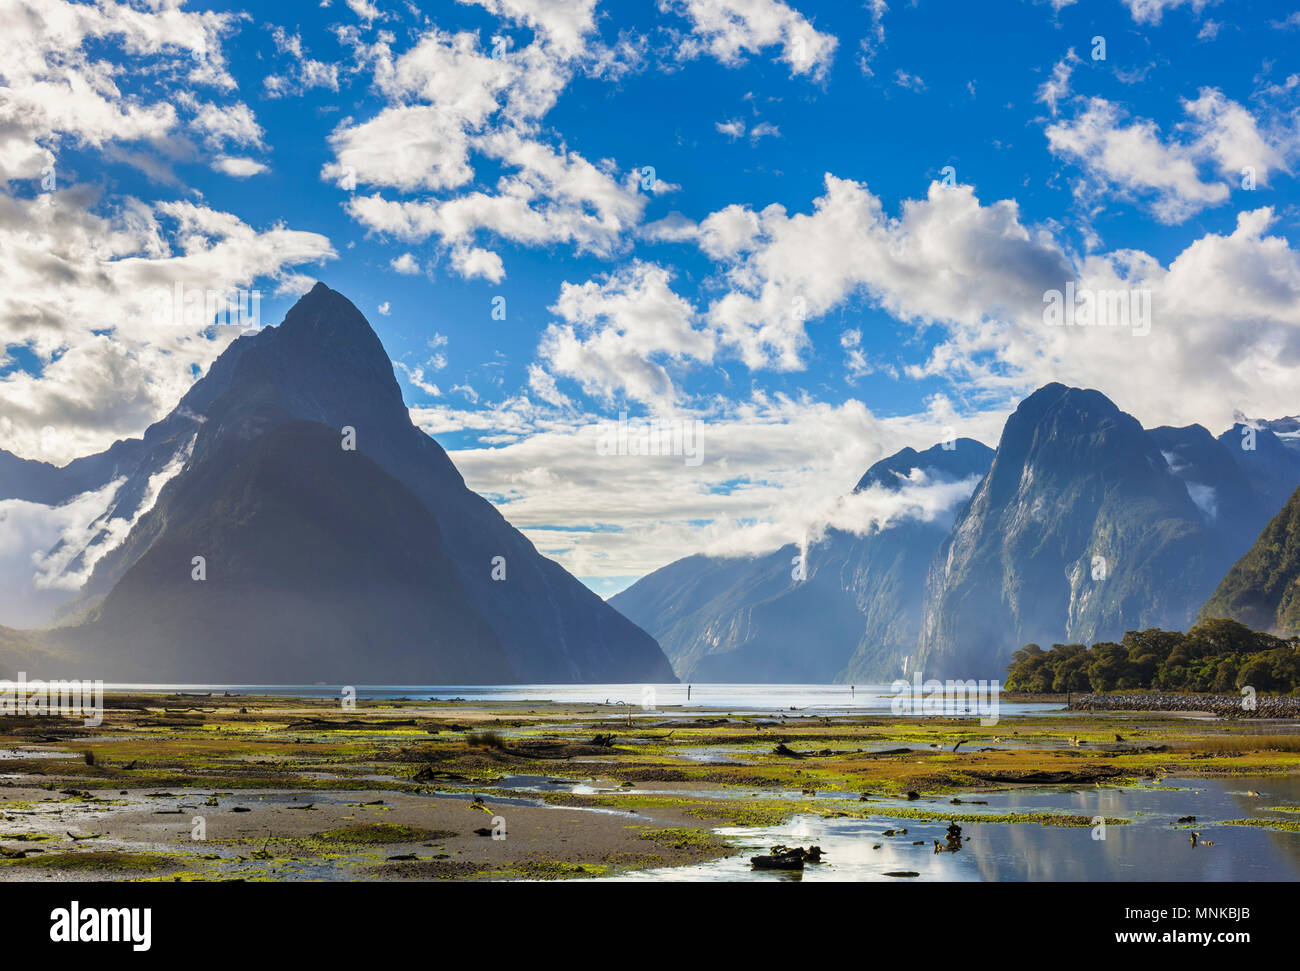 Nouvelle-zélande Milford Sound Milford Sound Mitre Peak Parc national de Fiordland Nouvelle-Zélande southland fjordland national park South Island nz Photo Stock